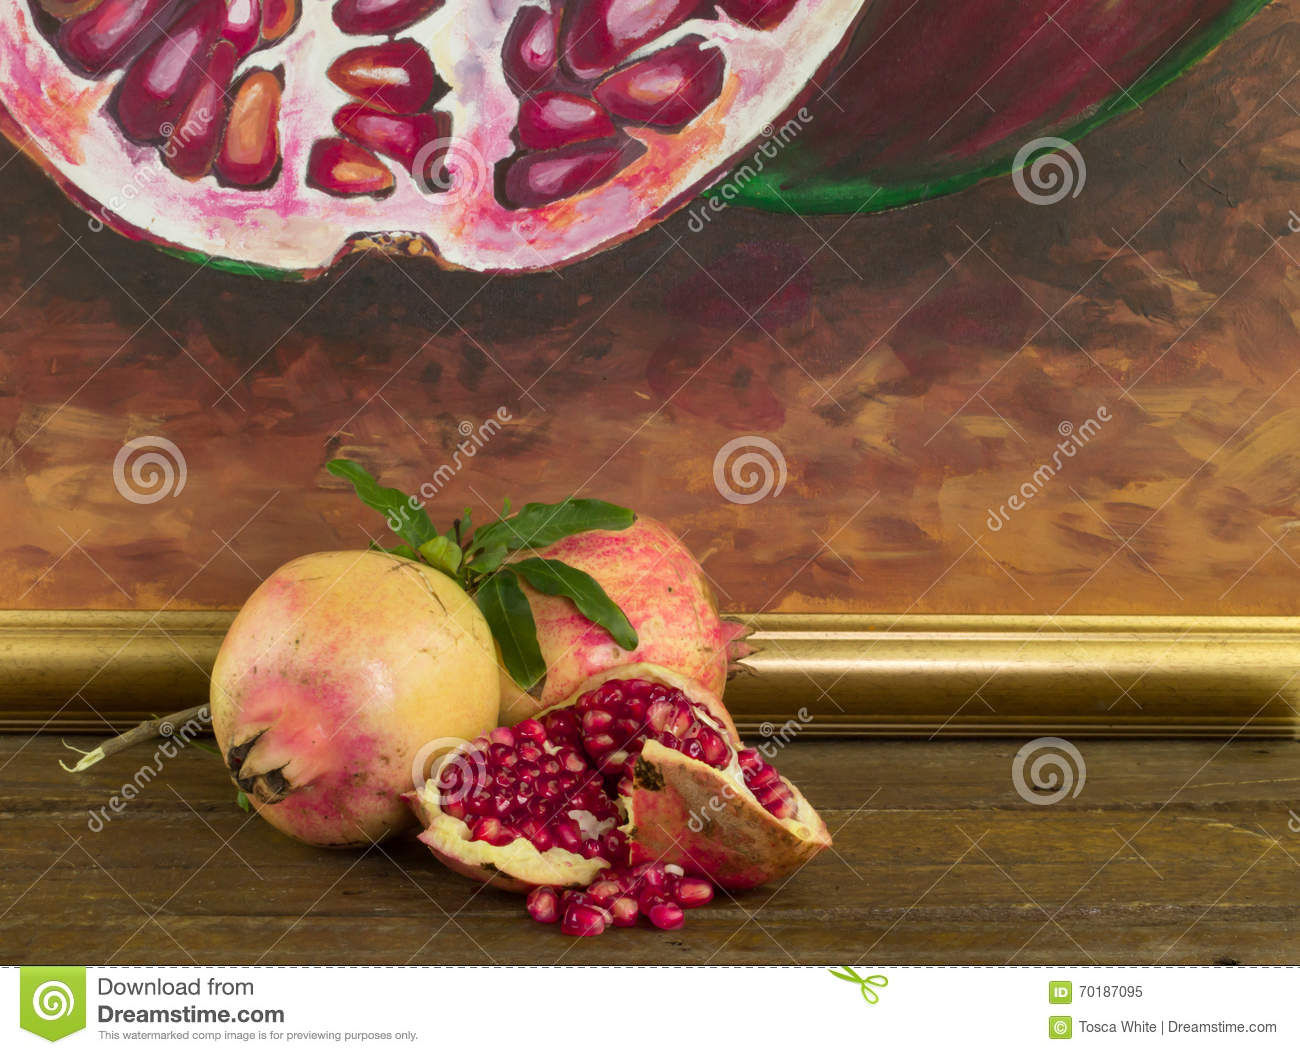 Whole and broken pomegranate on wood